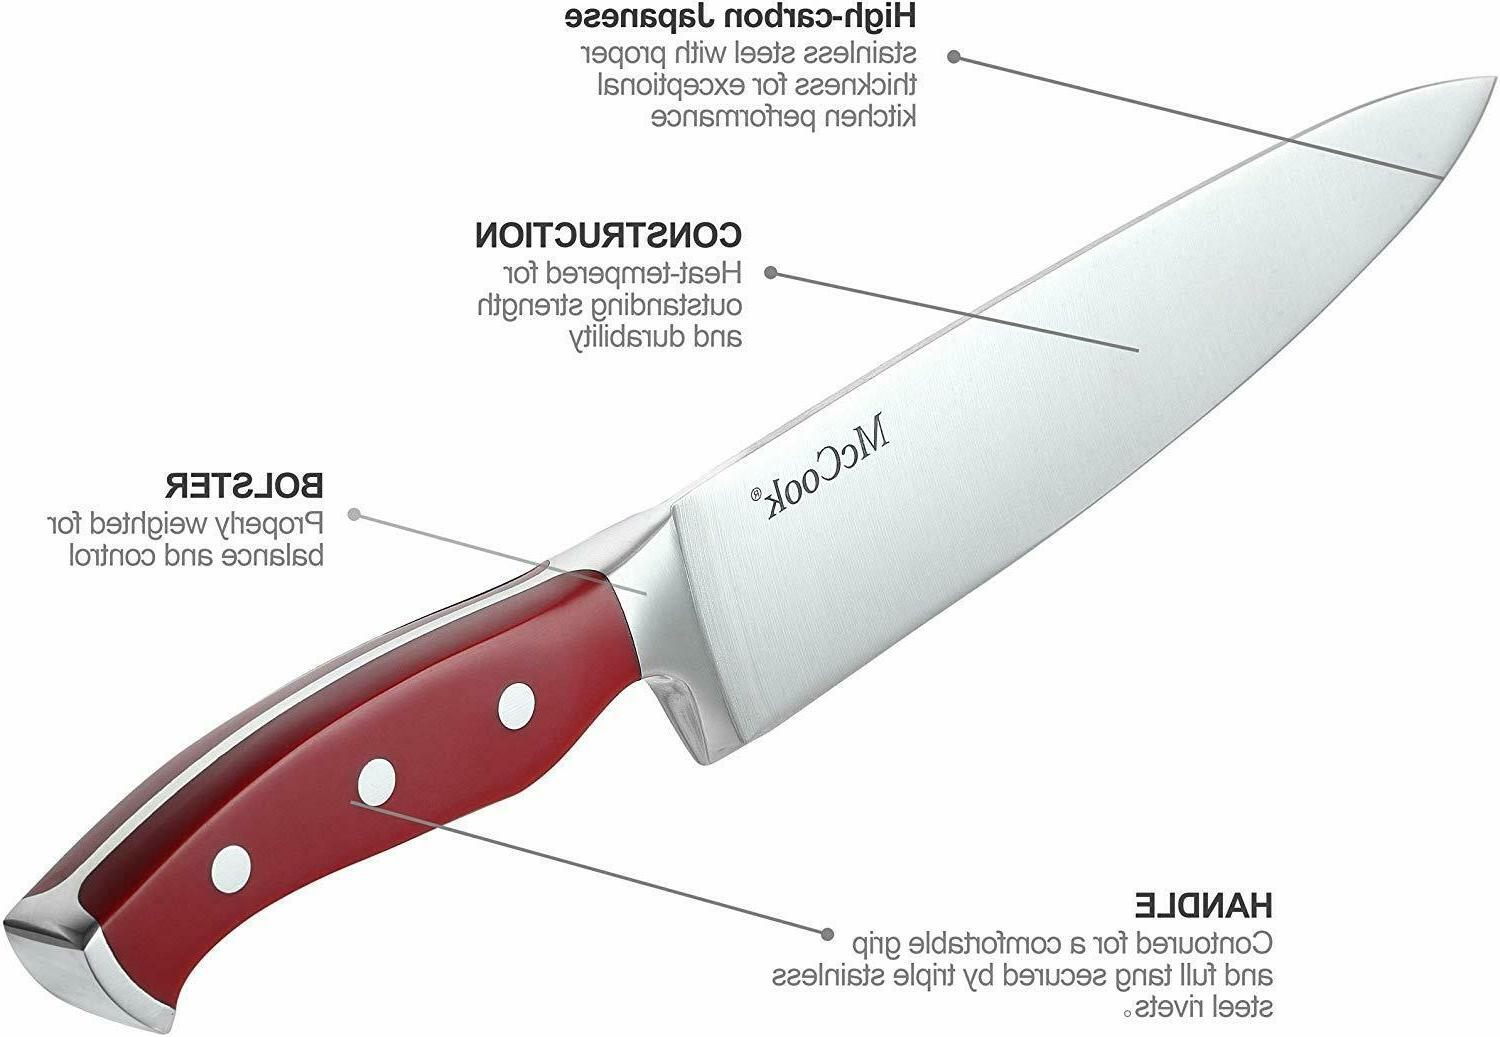 Knife Knife with